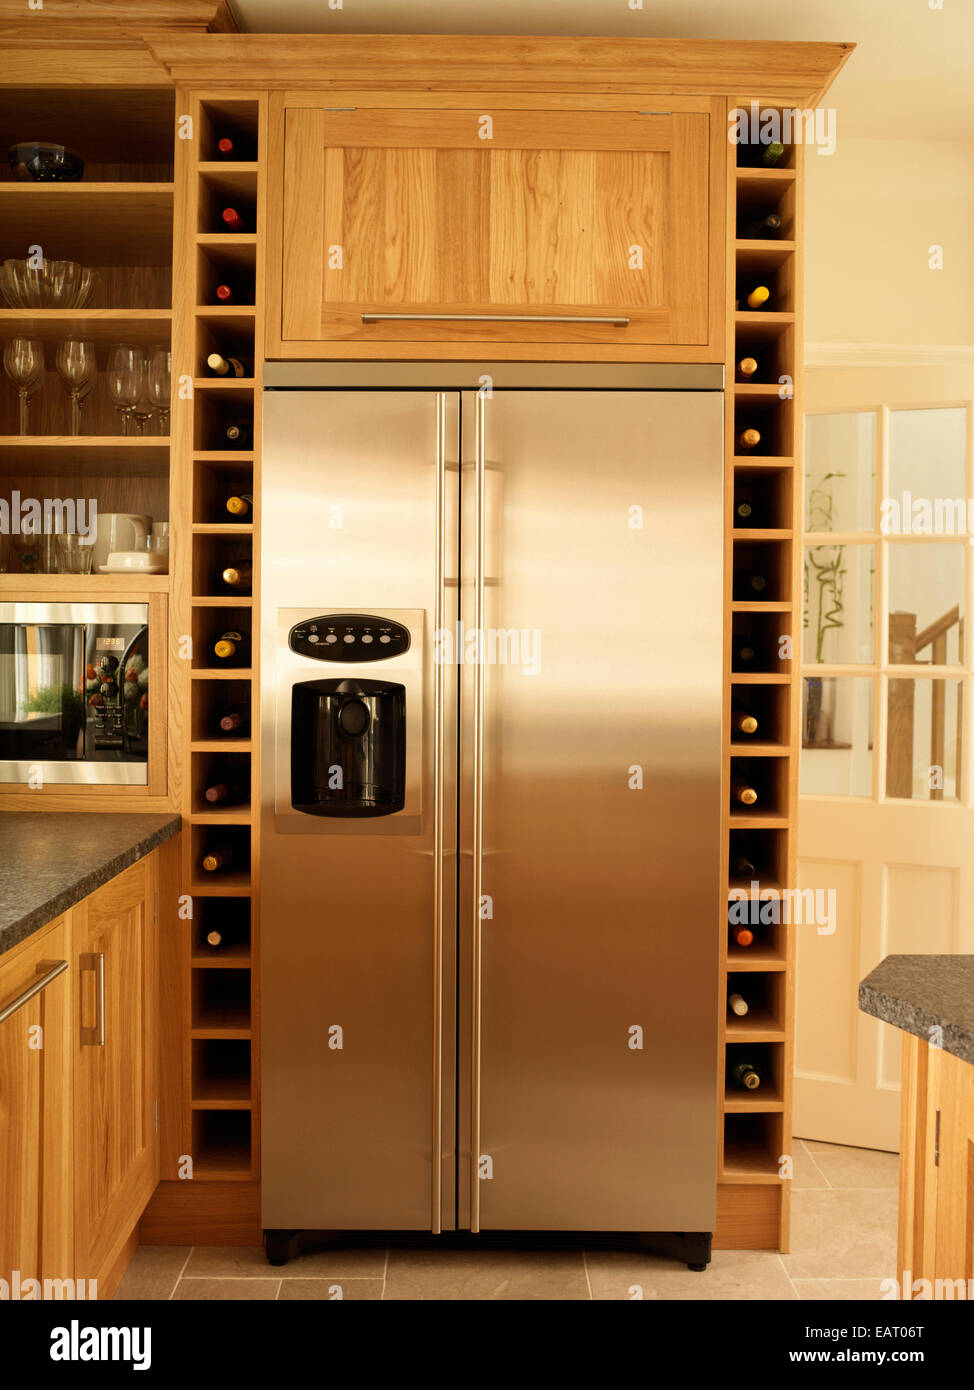 Stainless Steel Fridge And Built In Wine Rack Storage In